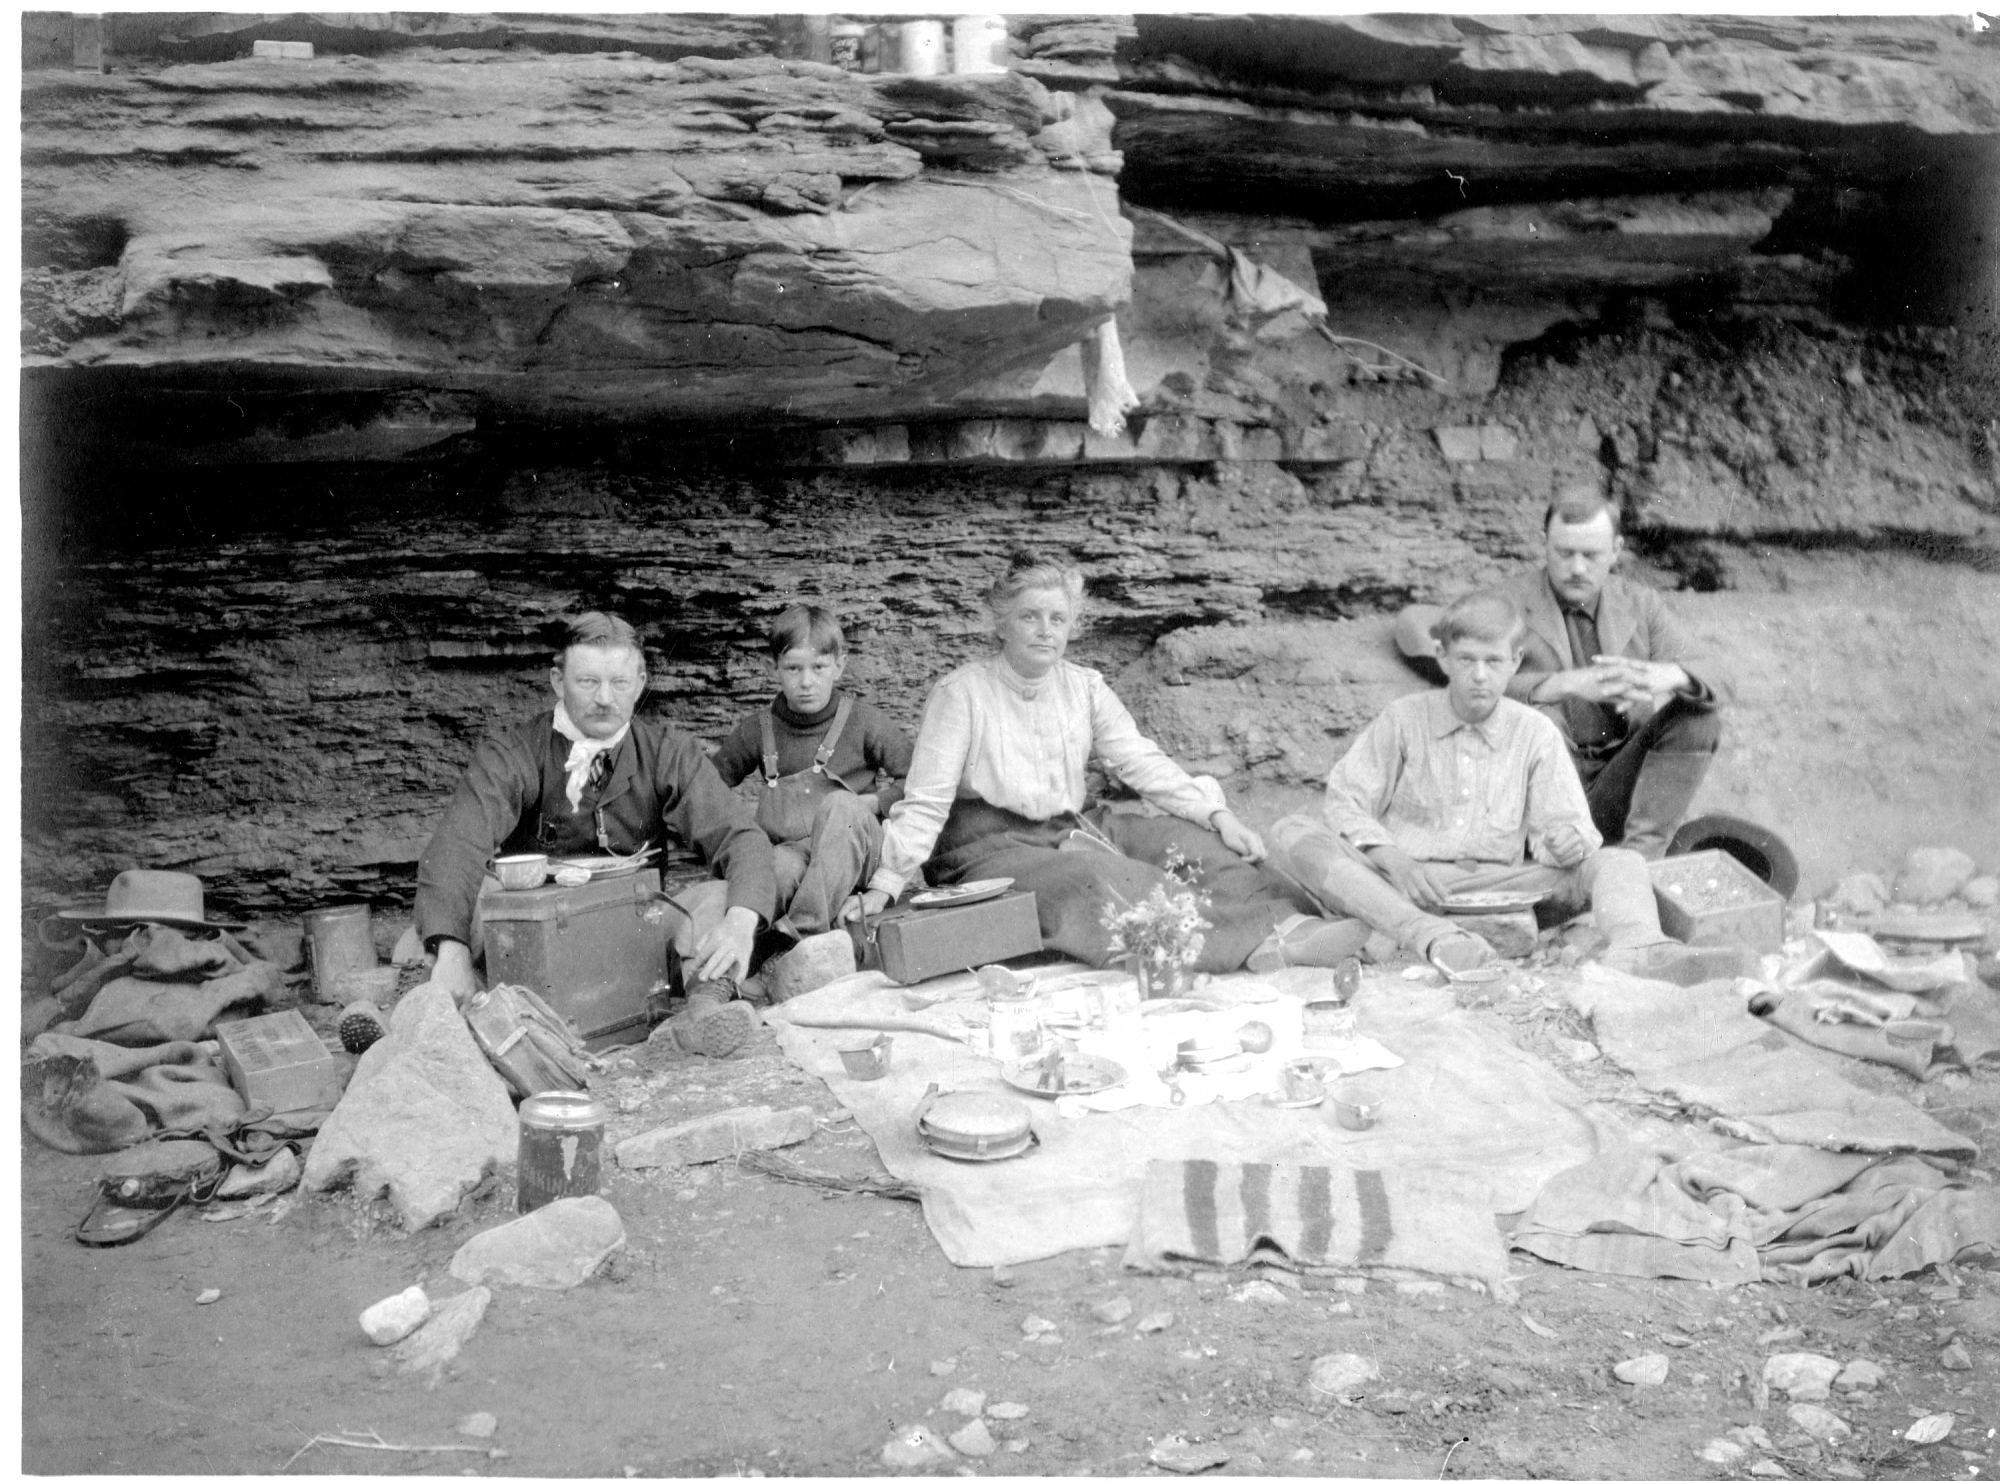 Smithsonian Secretary Charles D. Walcott and his family having a picnic in the Grand Canyon, May 190